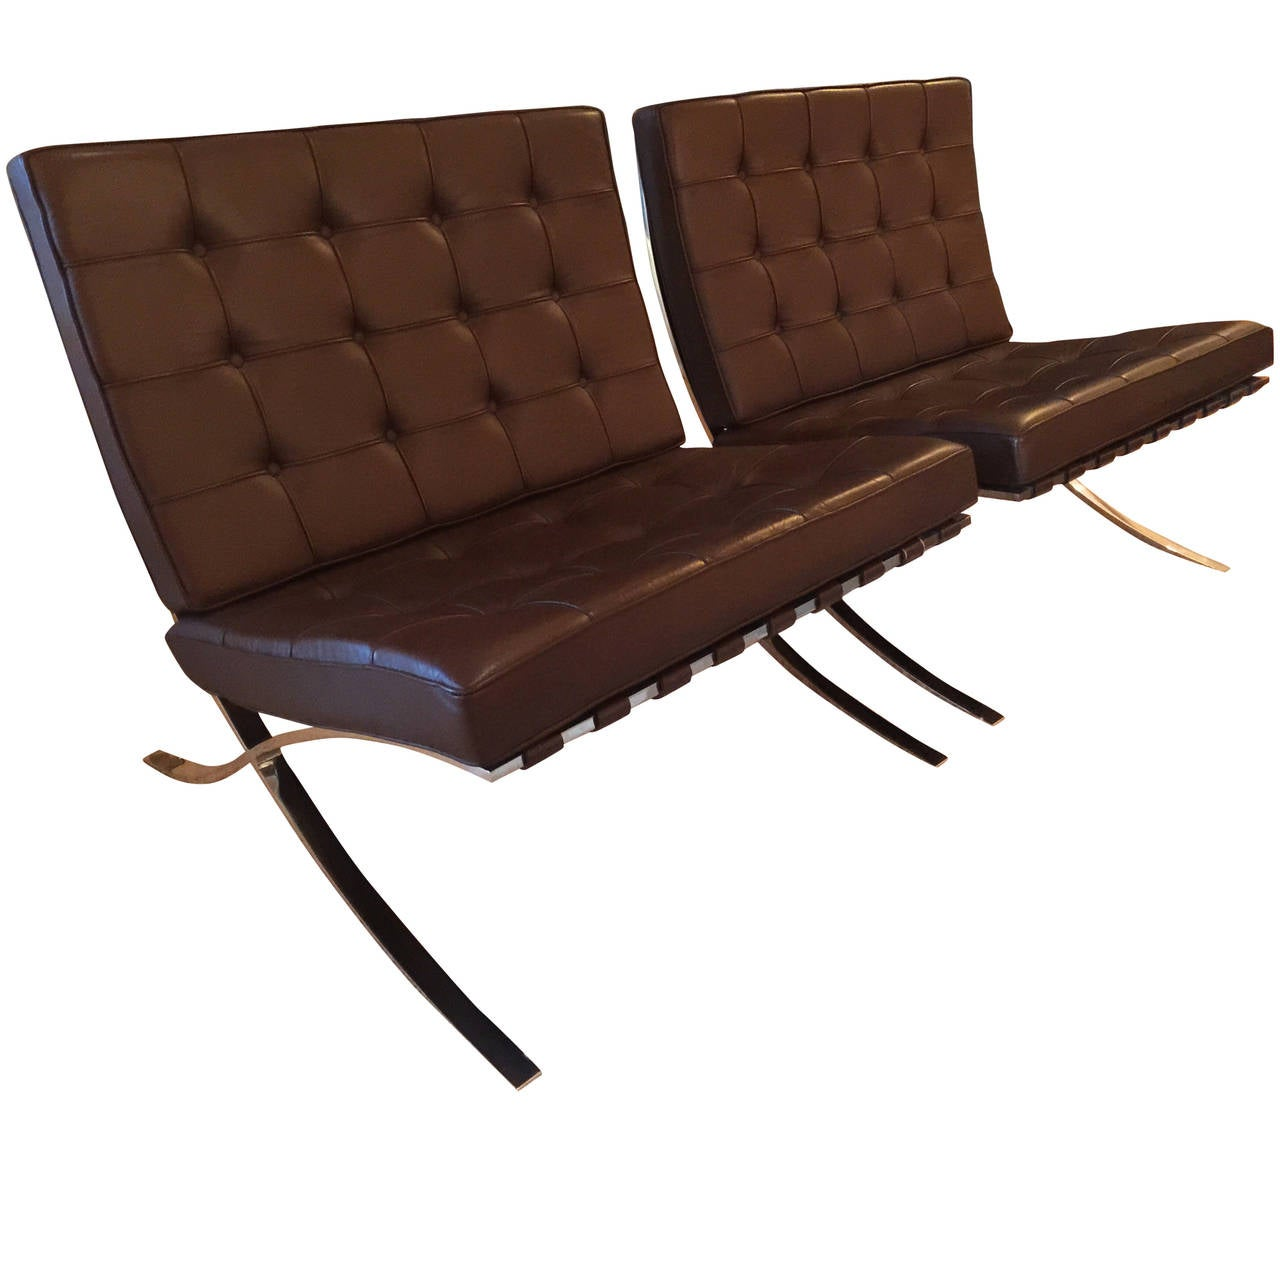 pair of barcelona brown leather chairs by mies van der. Black Bedroom Furniture Sets. Home Design Ideas